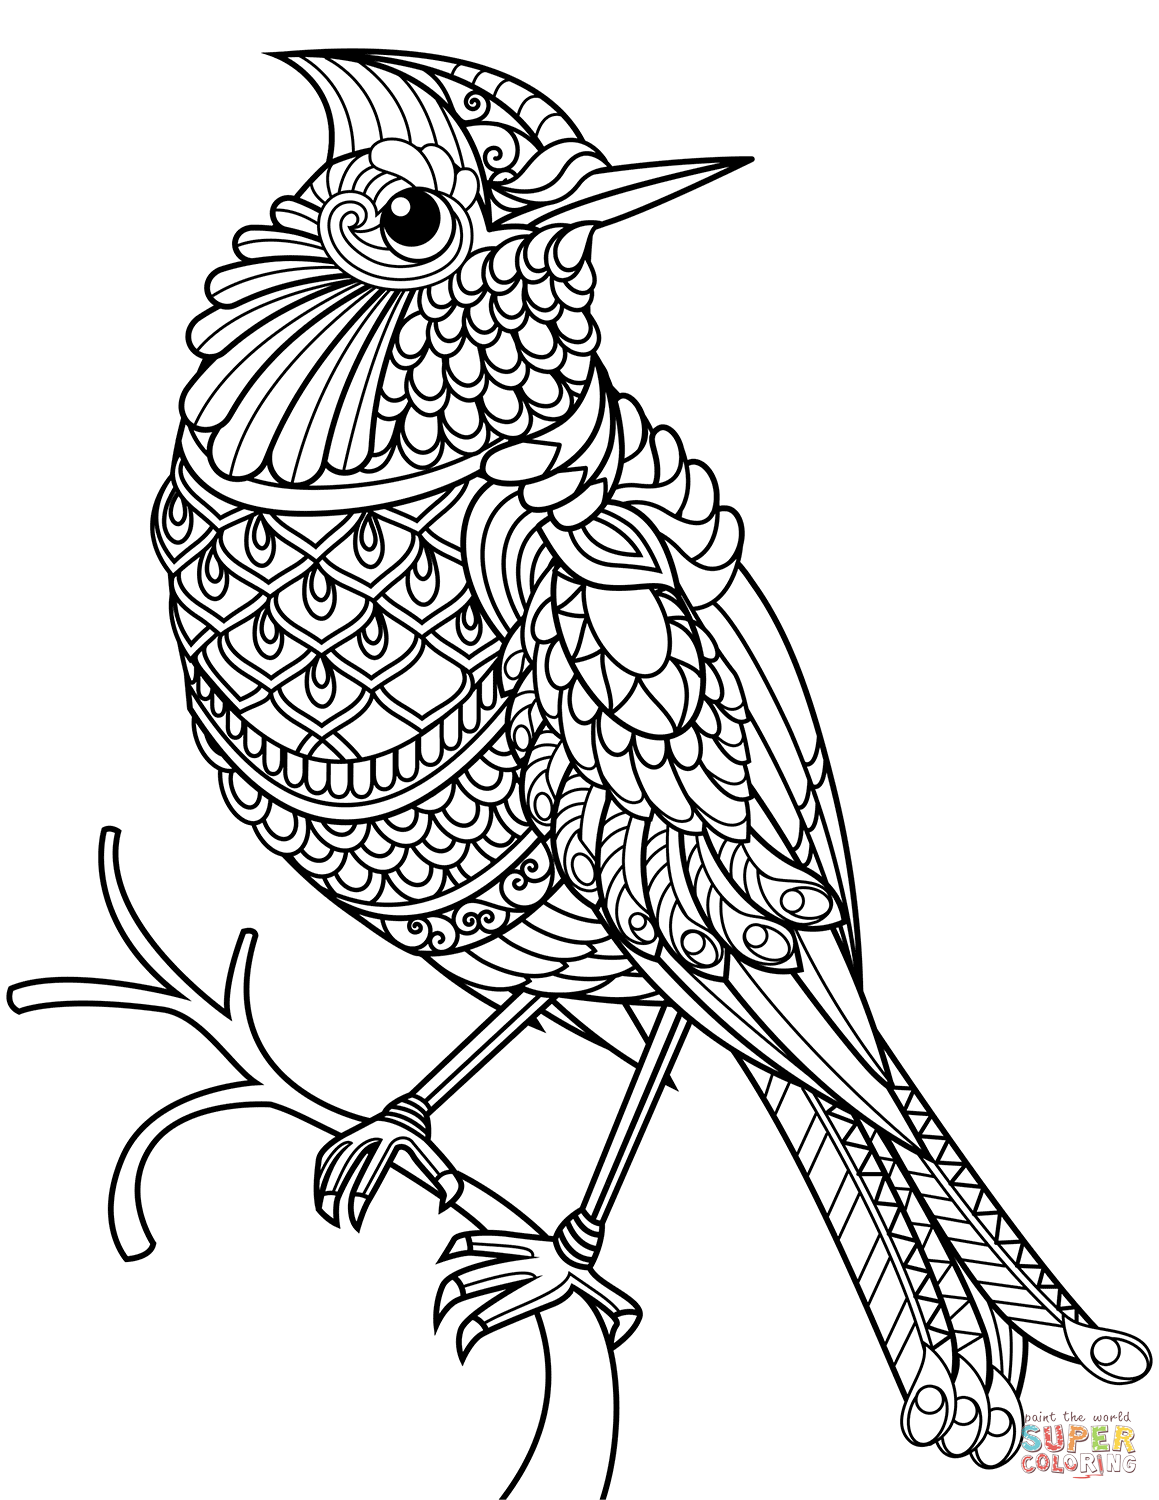 zentangle coloring pages free printable zentangle rhino coloring page free printable coloring pages pages free printable coloring zentangle